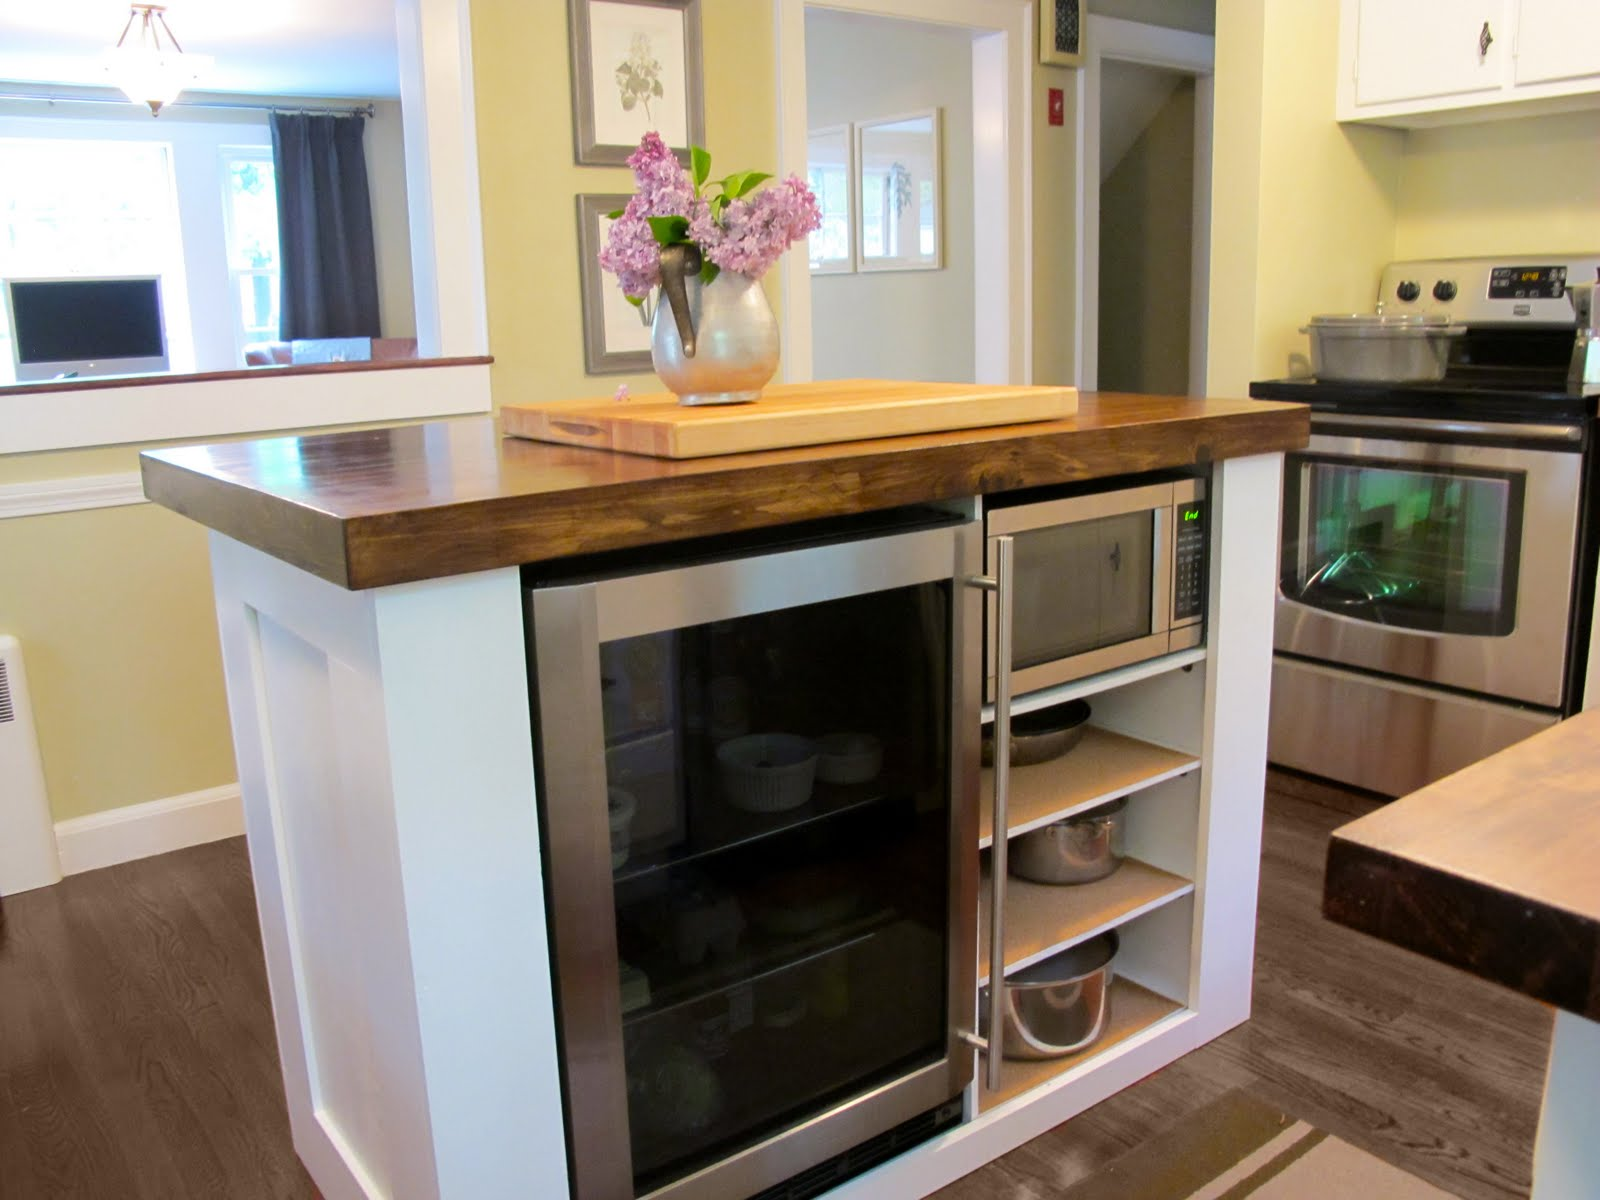 Outstanding Small Kitchen Island with Seating 1600 x 1200 · 144 kB · jpeg